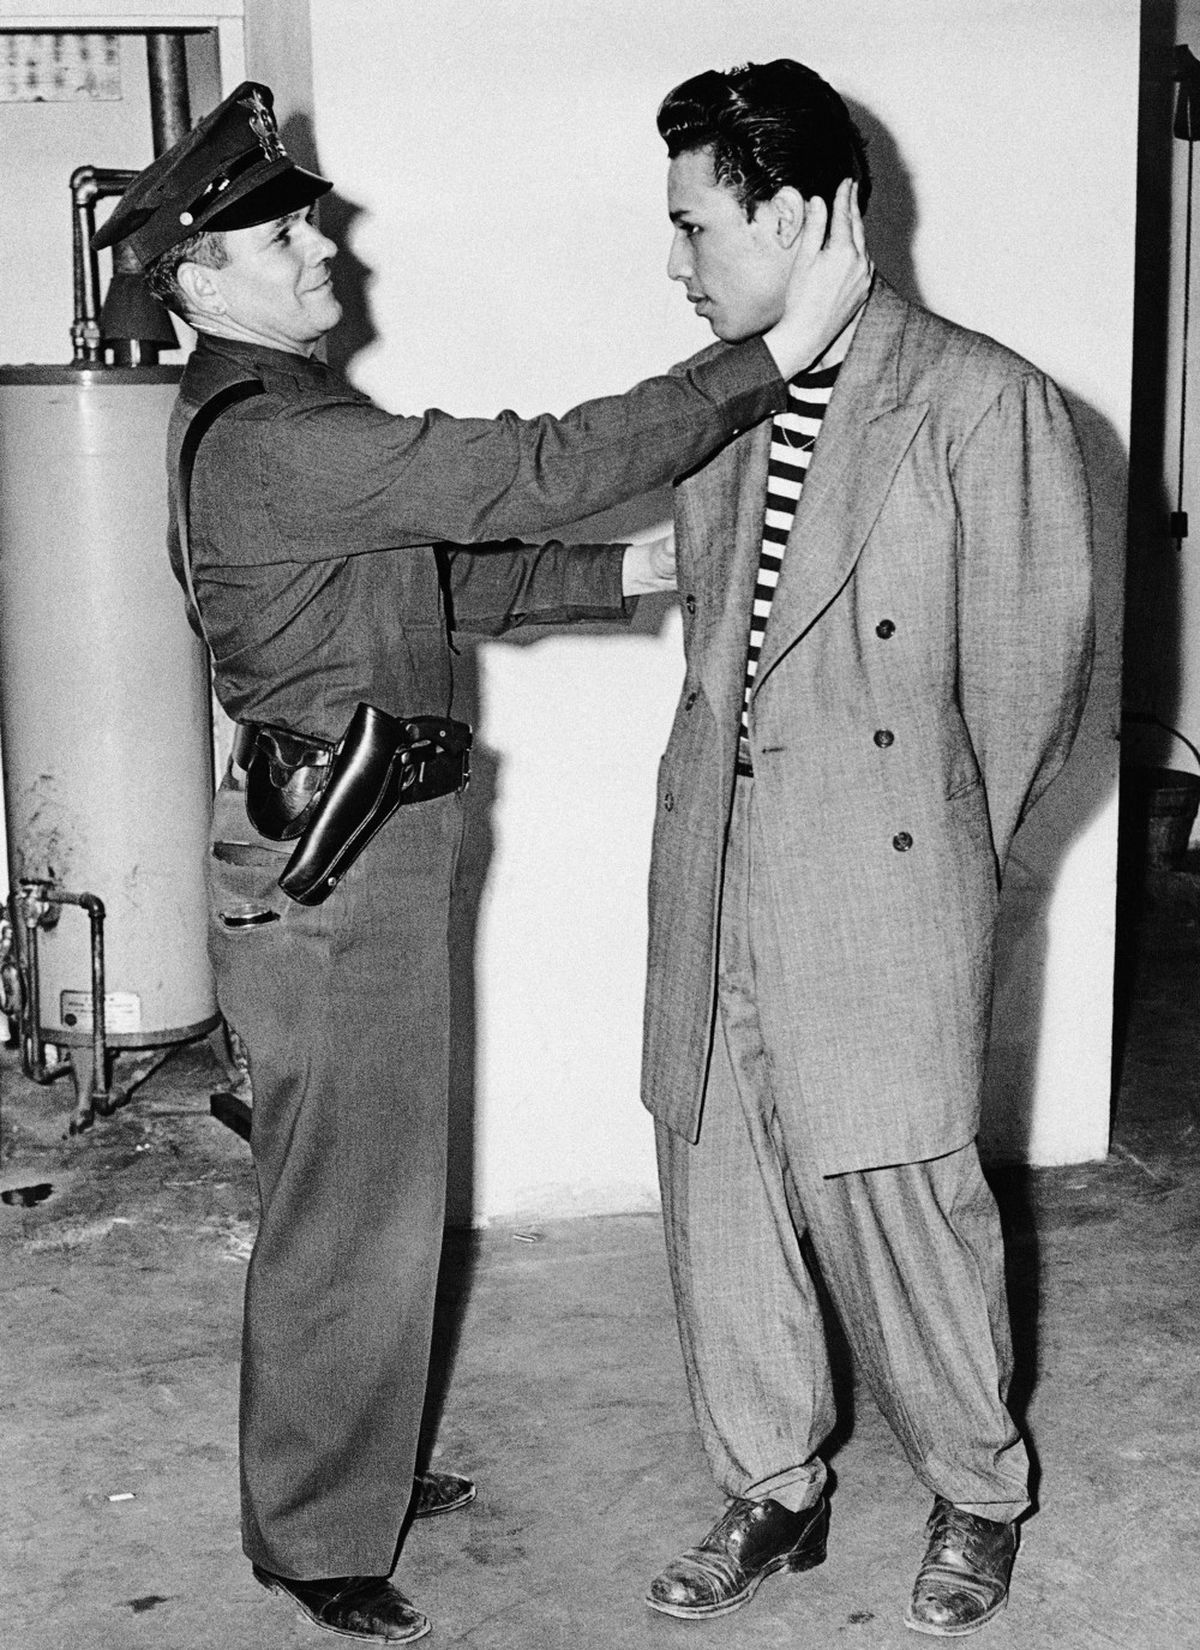 A man in a zoot suit is inspected after being arrested by the LAPD in 1943